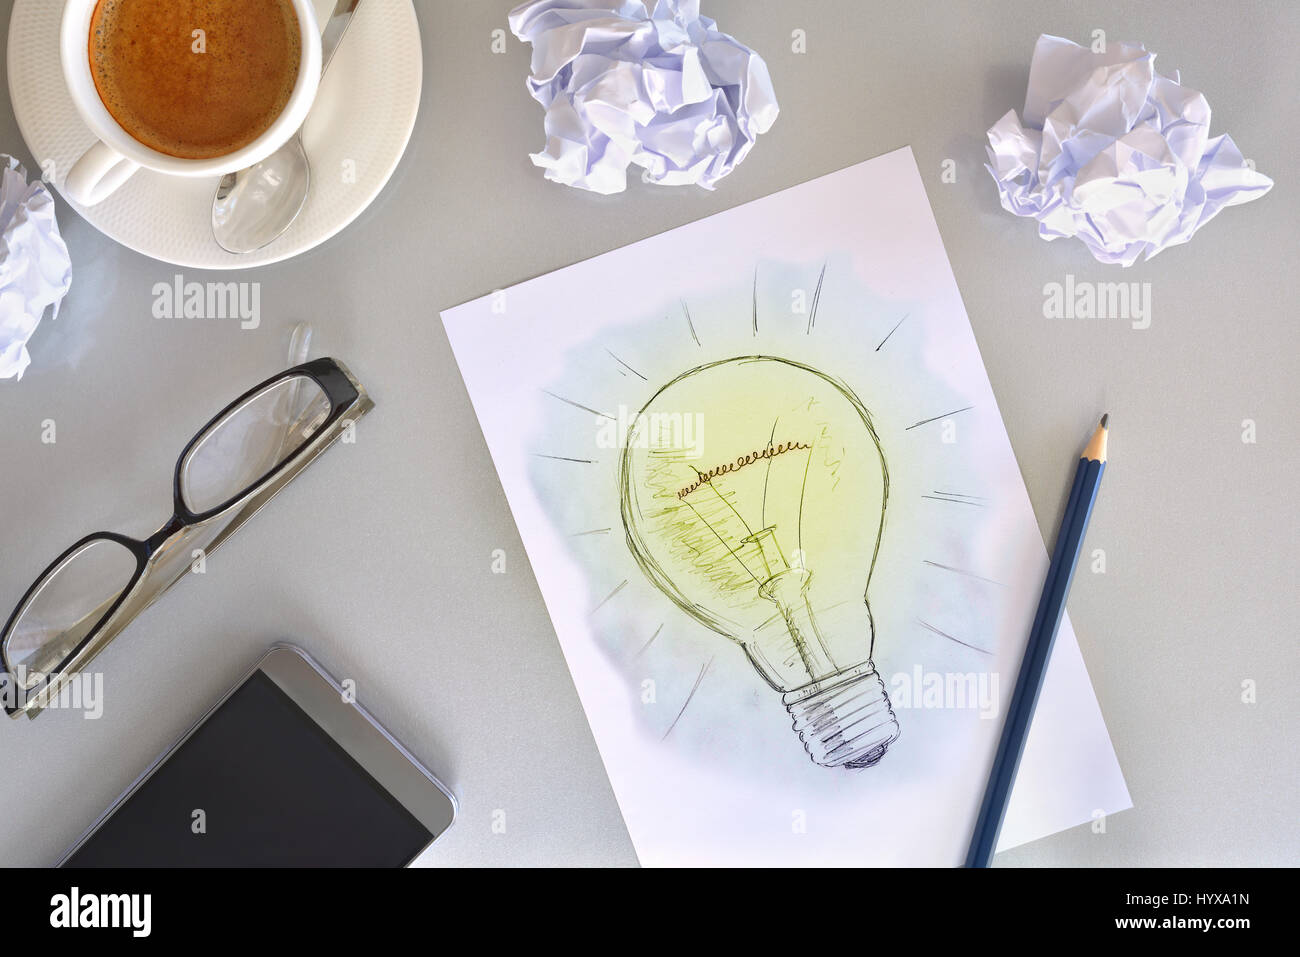 Concept of business idea with representation of the development of a plan with bulb drawn on a sheet. With pencil, - Stock Image